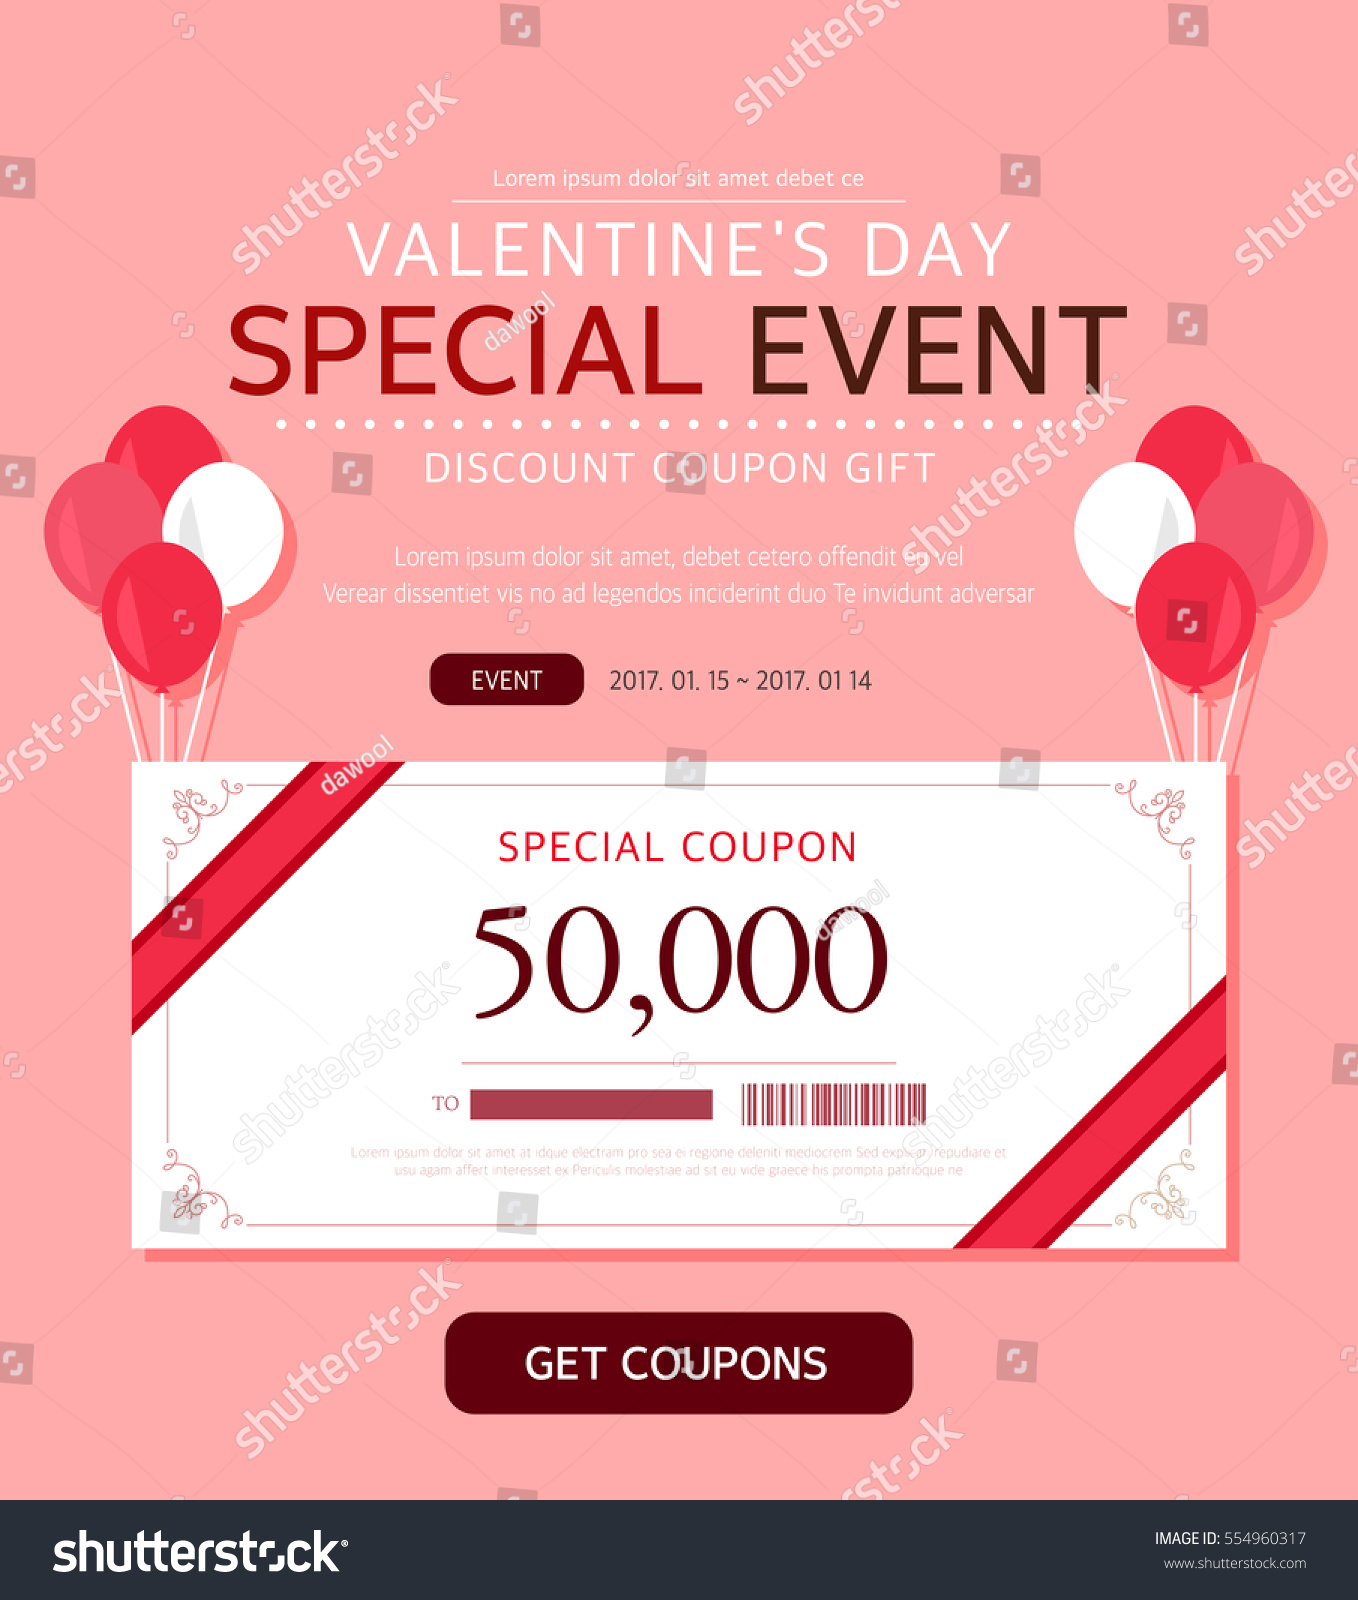 Valentines Day Event Illustration Stock Vector Royalty Free